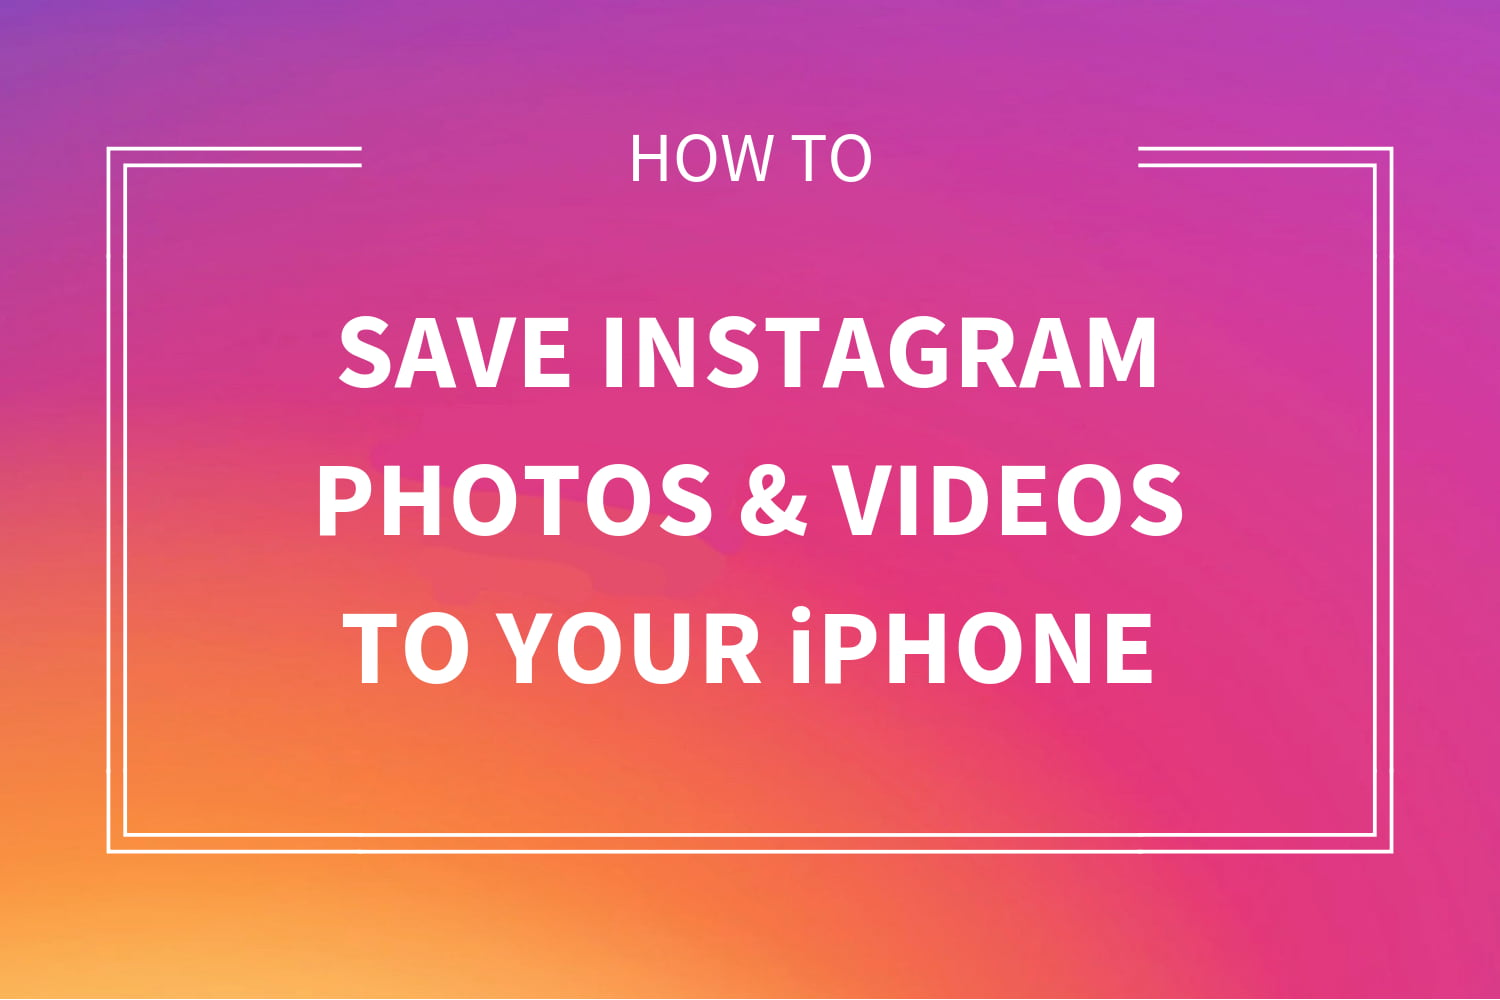 How to download Instagram photos or videos to iPhone